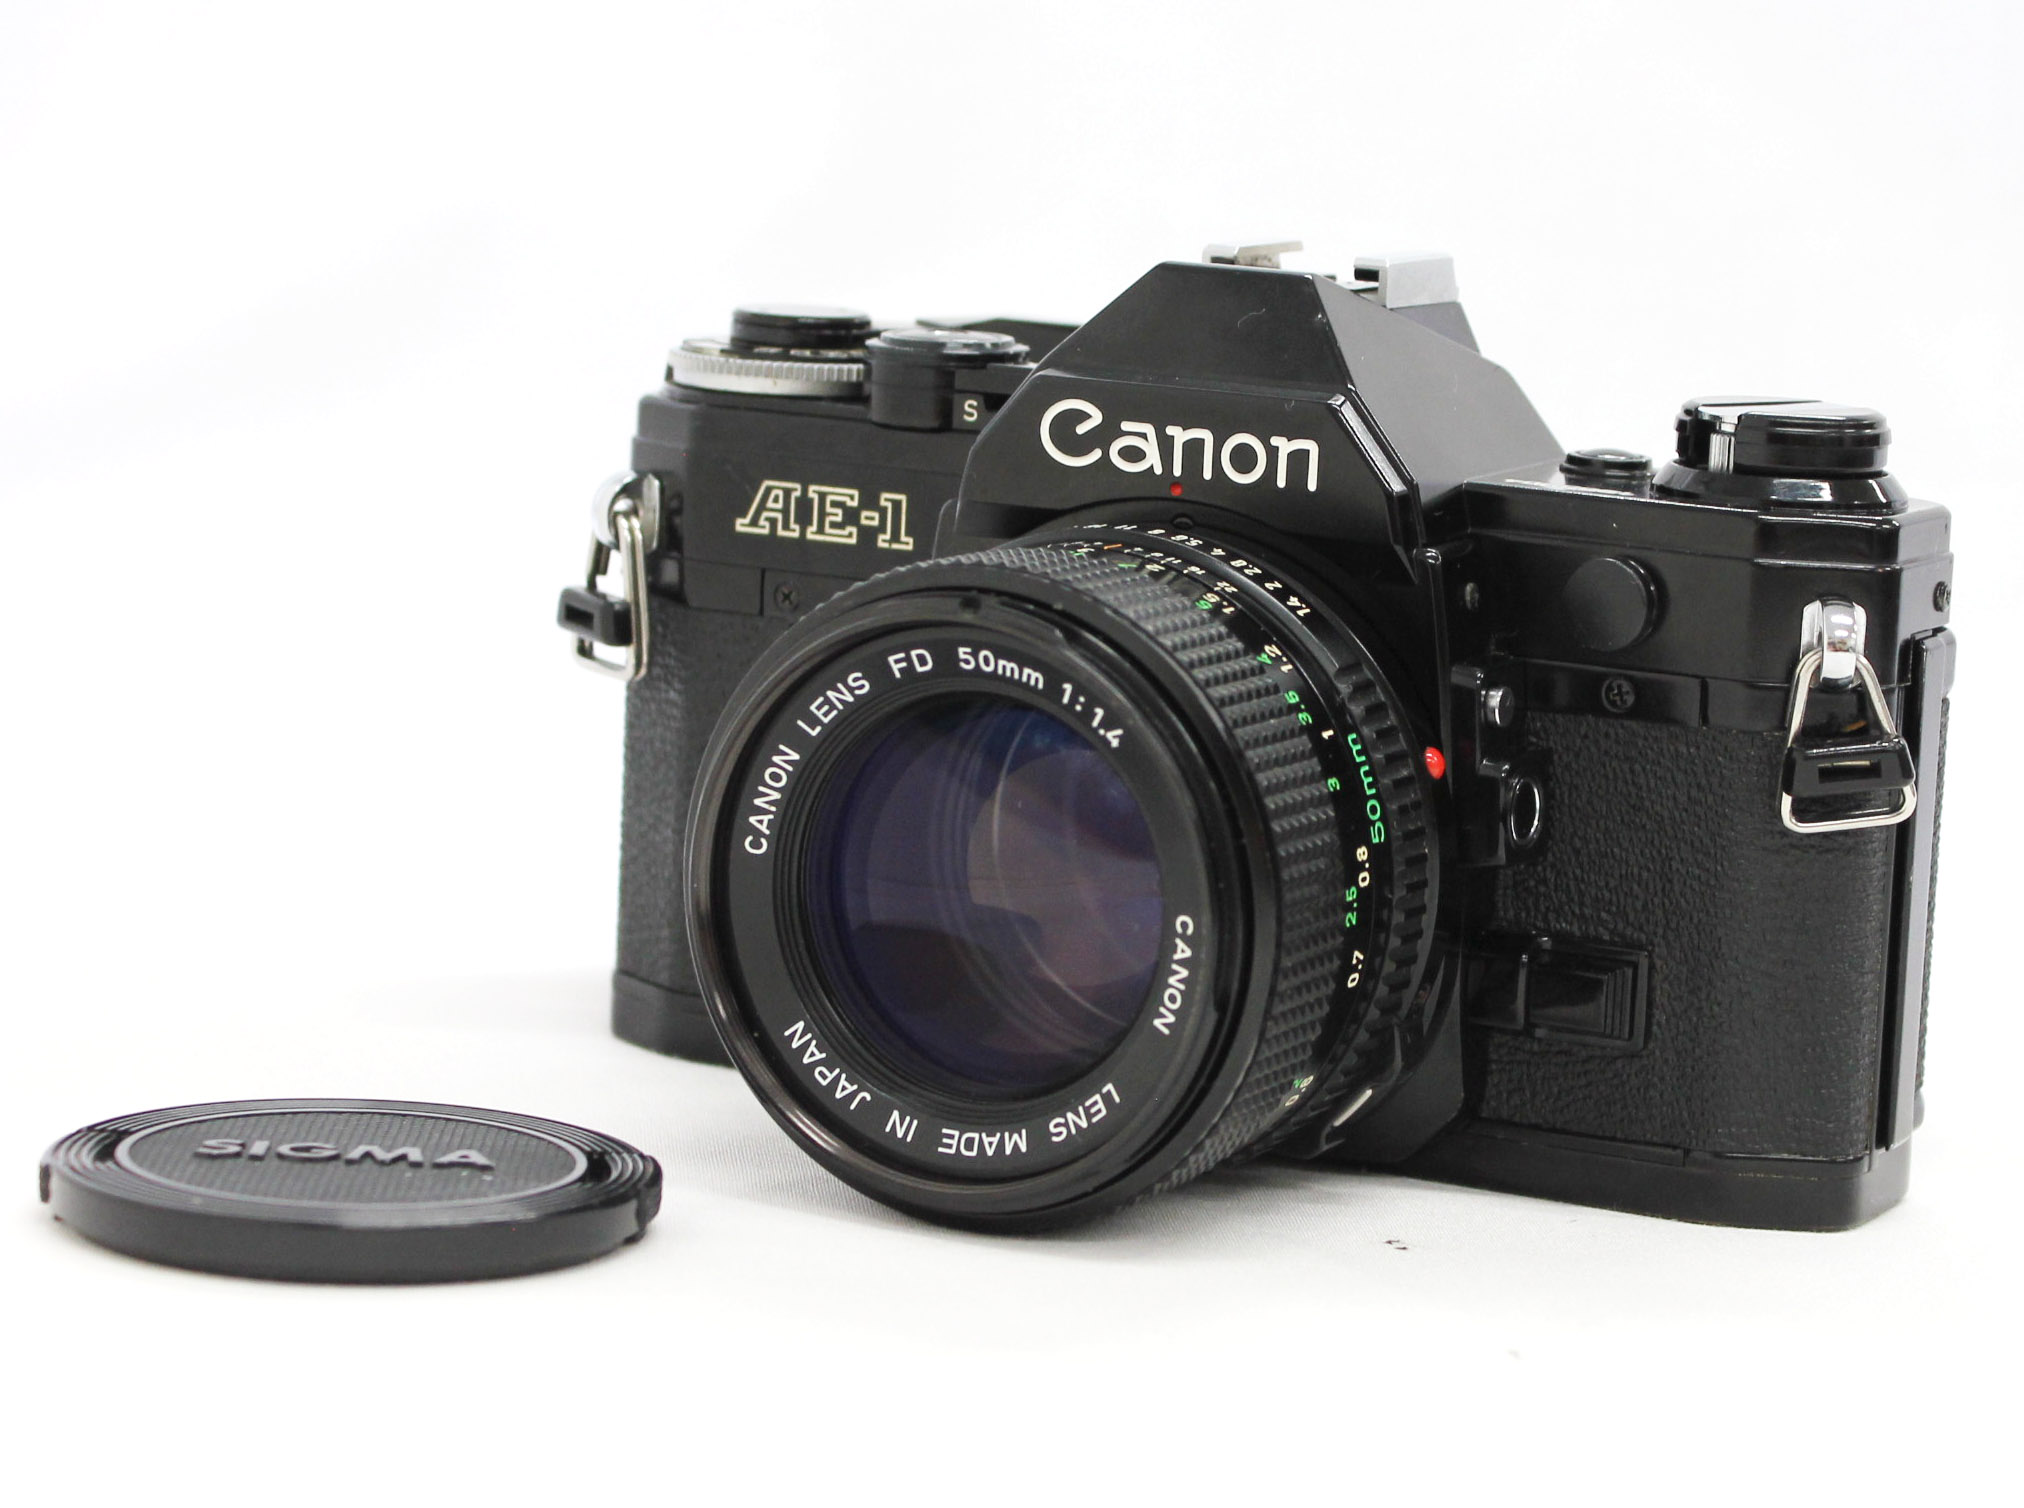 [Exc++++] Canon AE-1 35mm SLR Film Camera Black with New FD NFD 50mm F/1.4 Lens from Japan